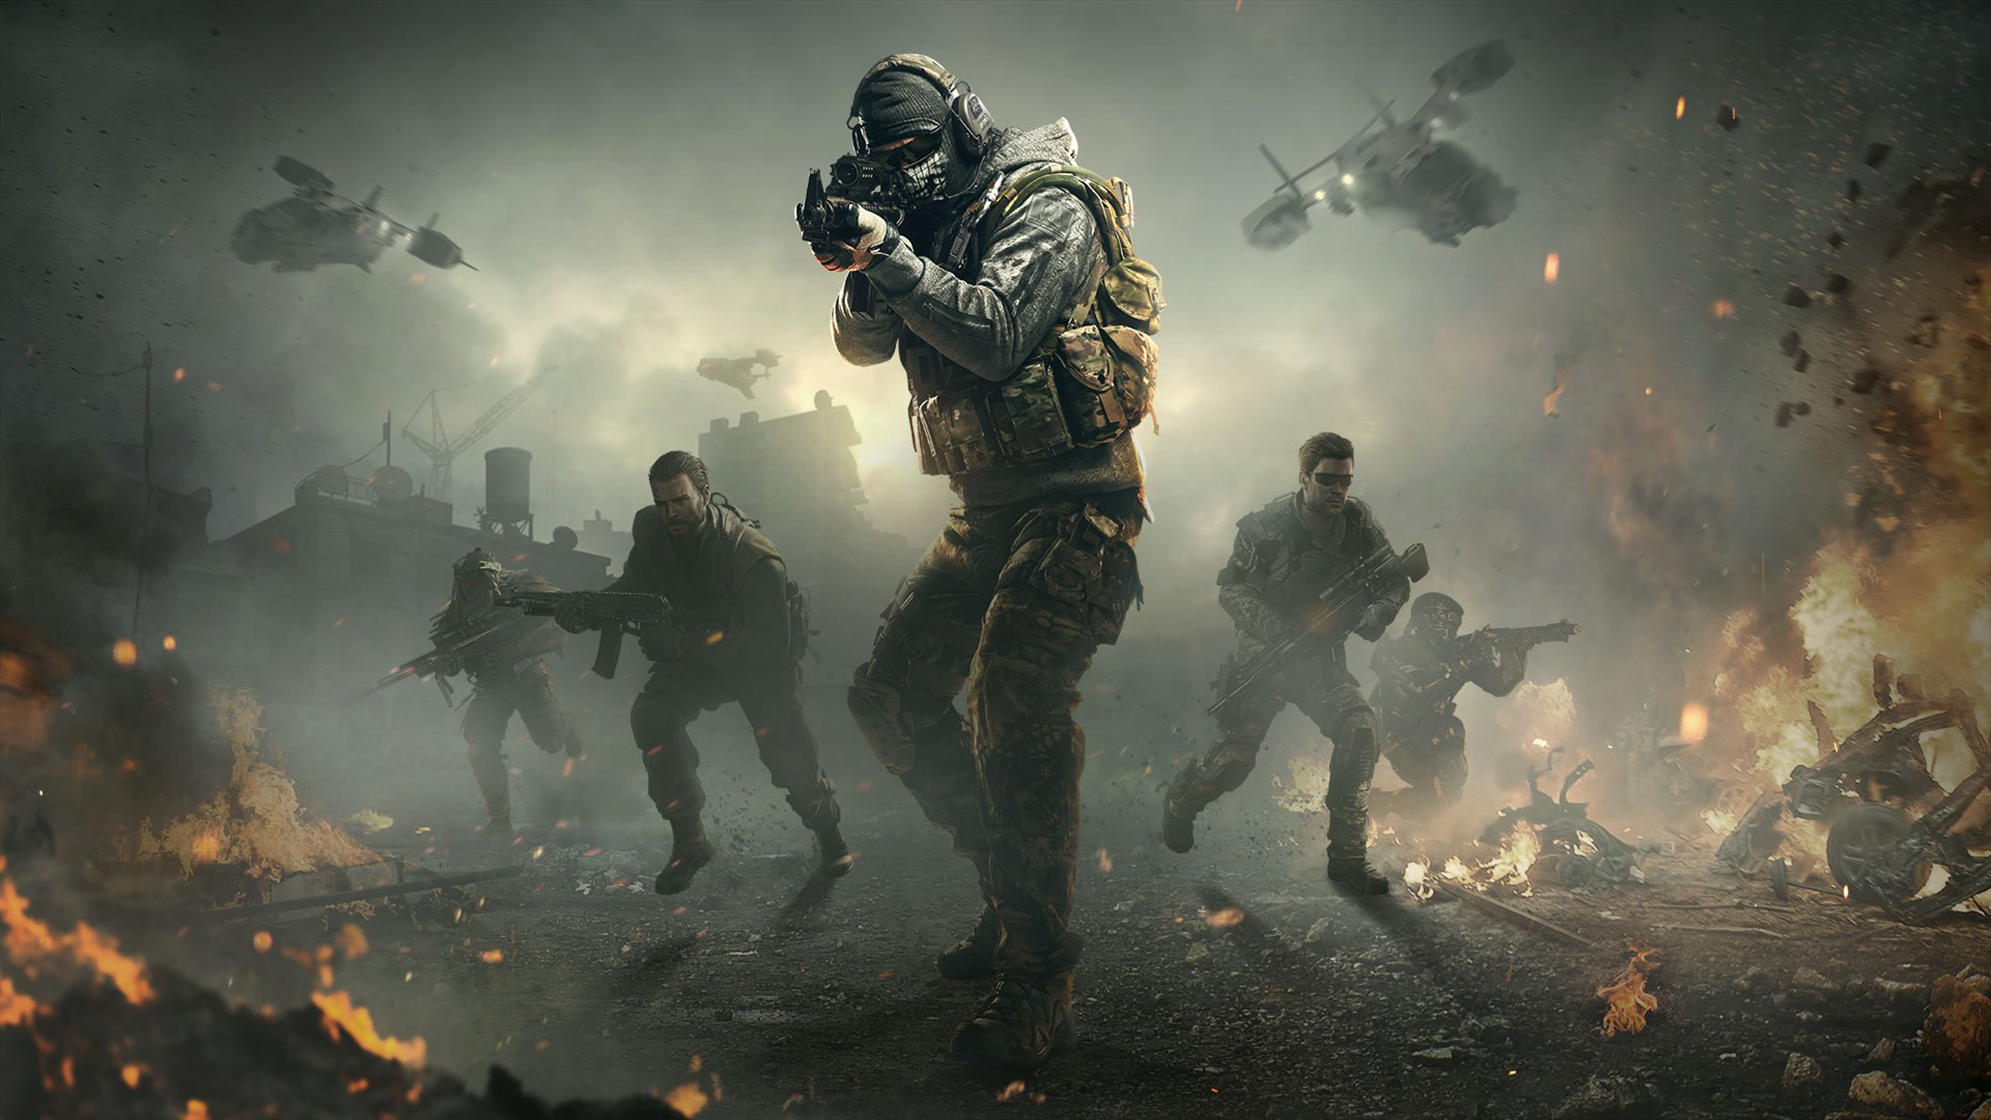 Call Of Duty Mobile 2019 Wallpaper, HD Games 4K Wallpapers ...